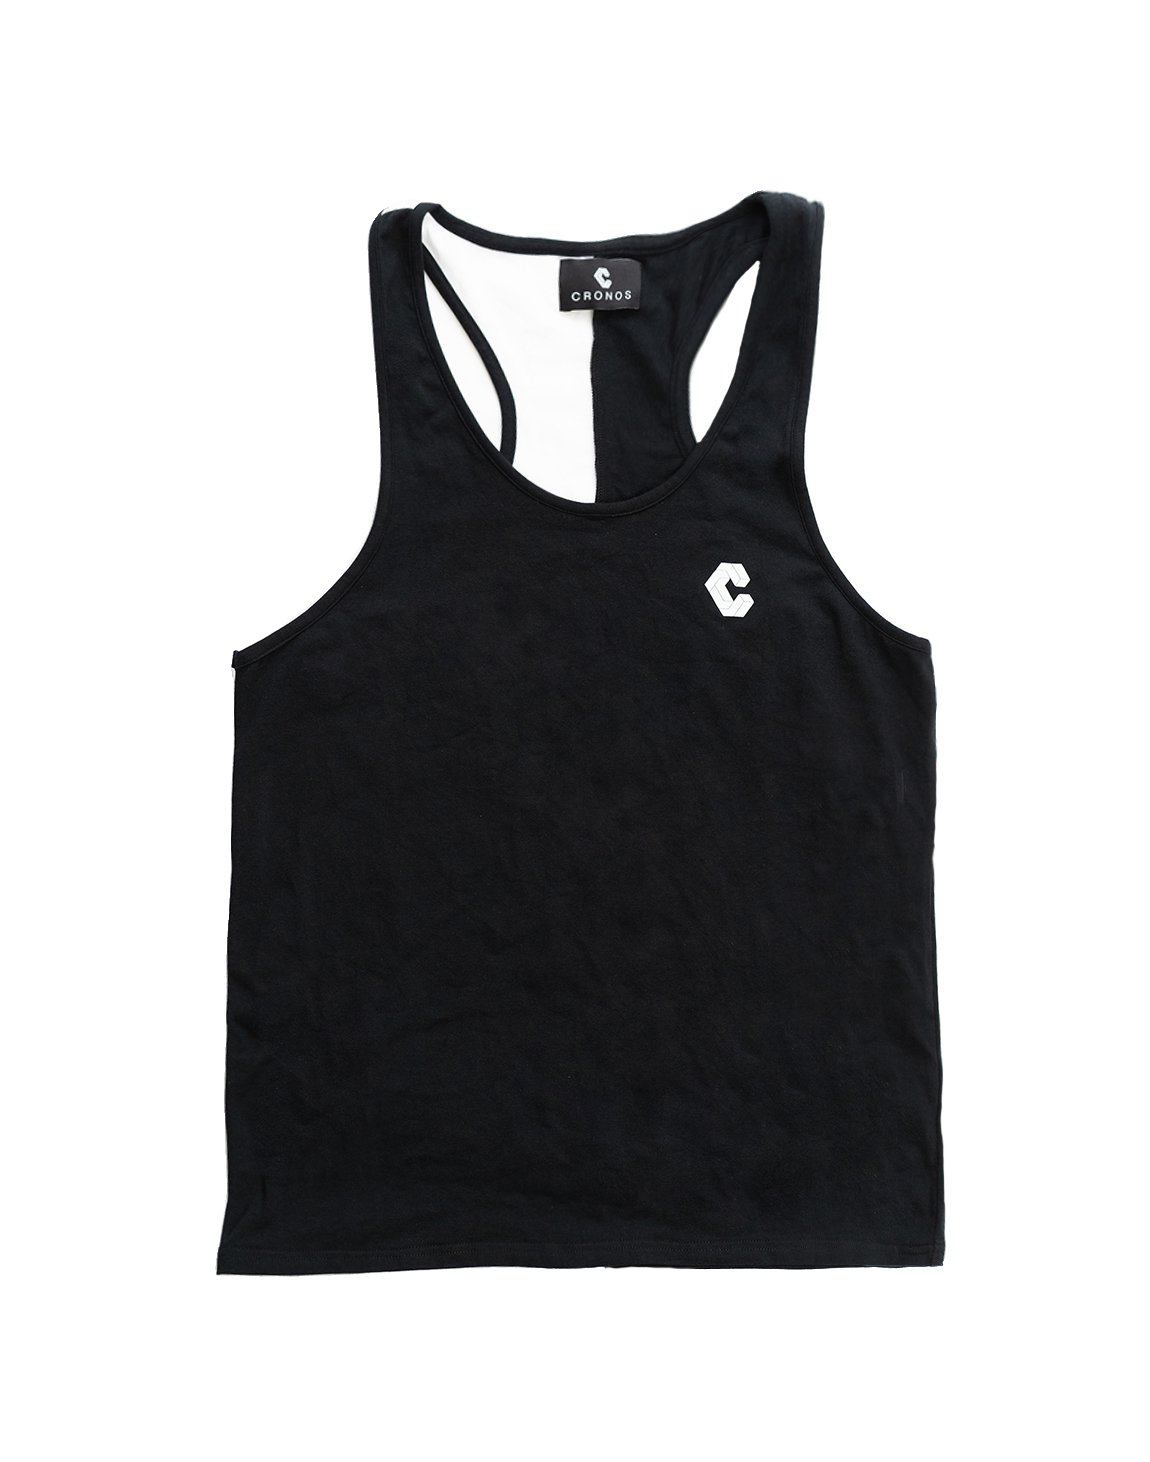 <img class='new_mark_img1' src='https://img.shop-pro.jp/img/new/icons1.gif' style='border:none;display:inline;margin:0px;padding:0px;width:auto;' />CRONOS BACK TWOLINE TANKTOP BLACK